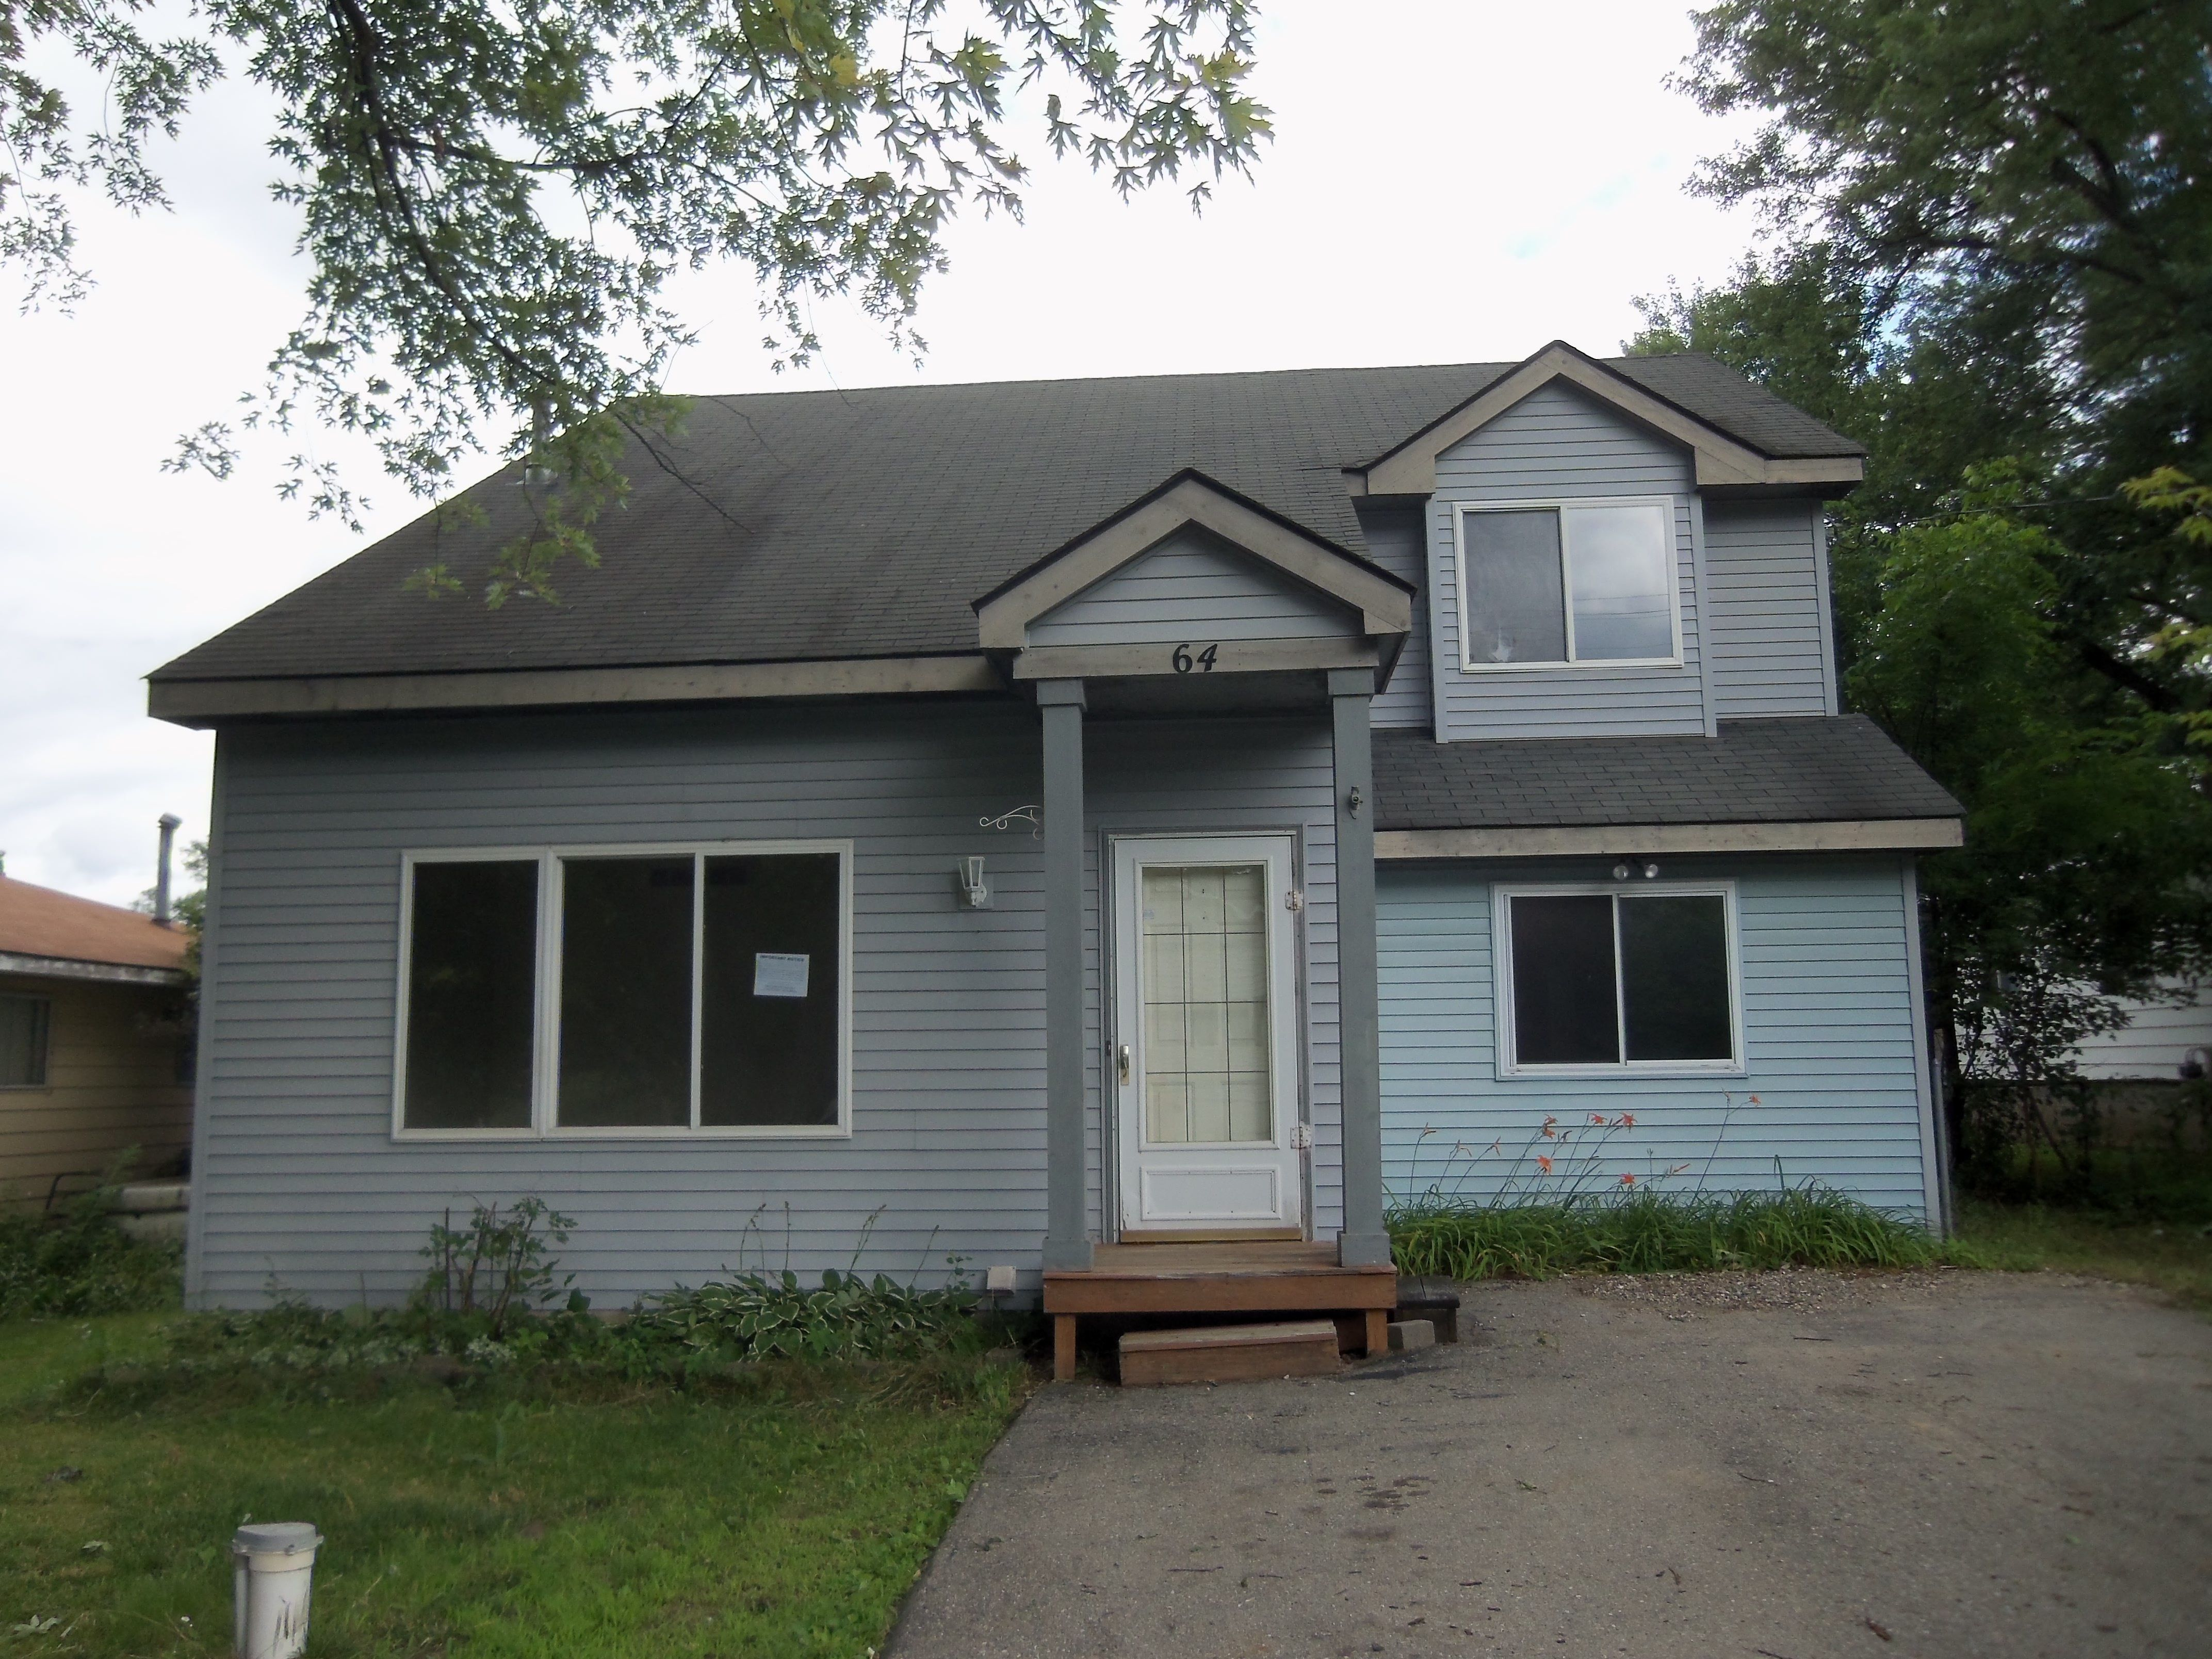 64 Shotwell St White Lake Mi For Sale Powered By Postlets Hud Homes Fenced In Yard White Lake